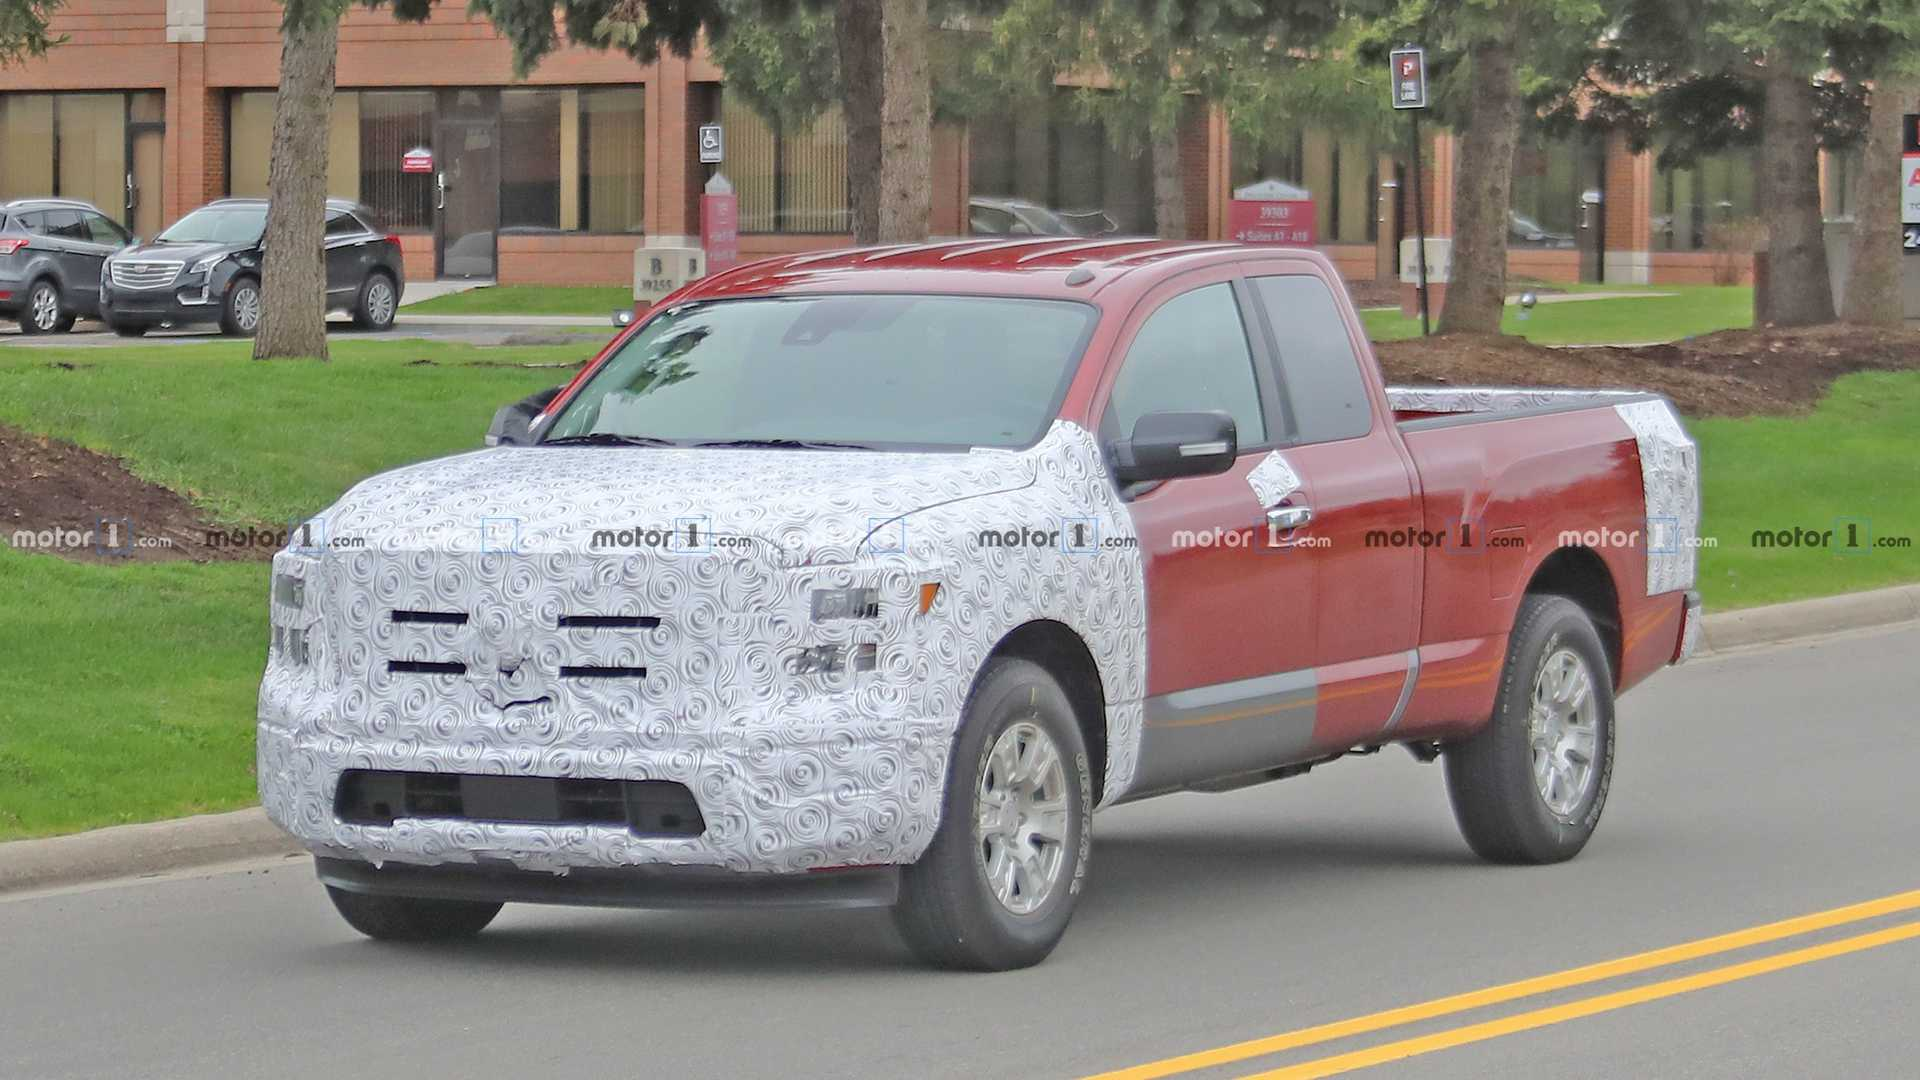 Nissan Titan Facelift Spied For First Time Disguised As An F 150